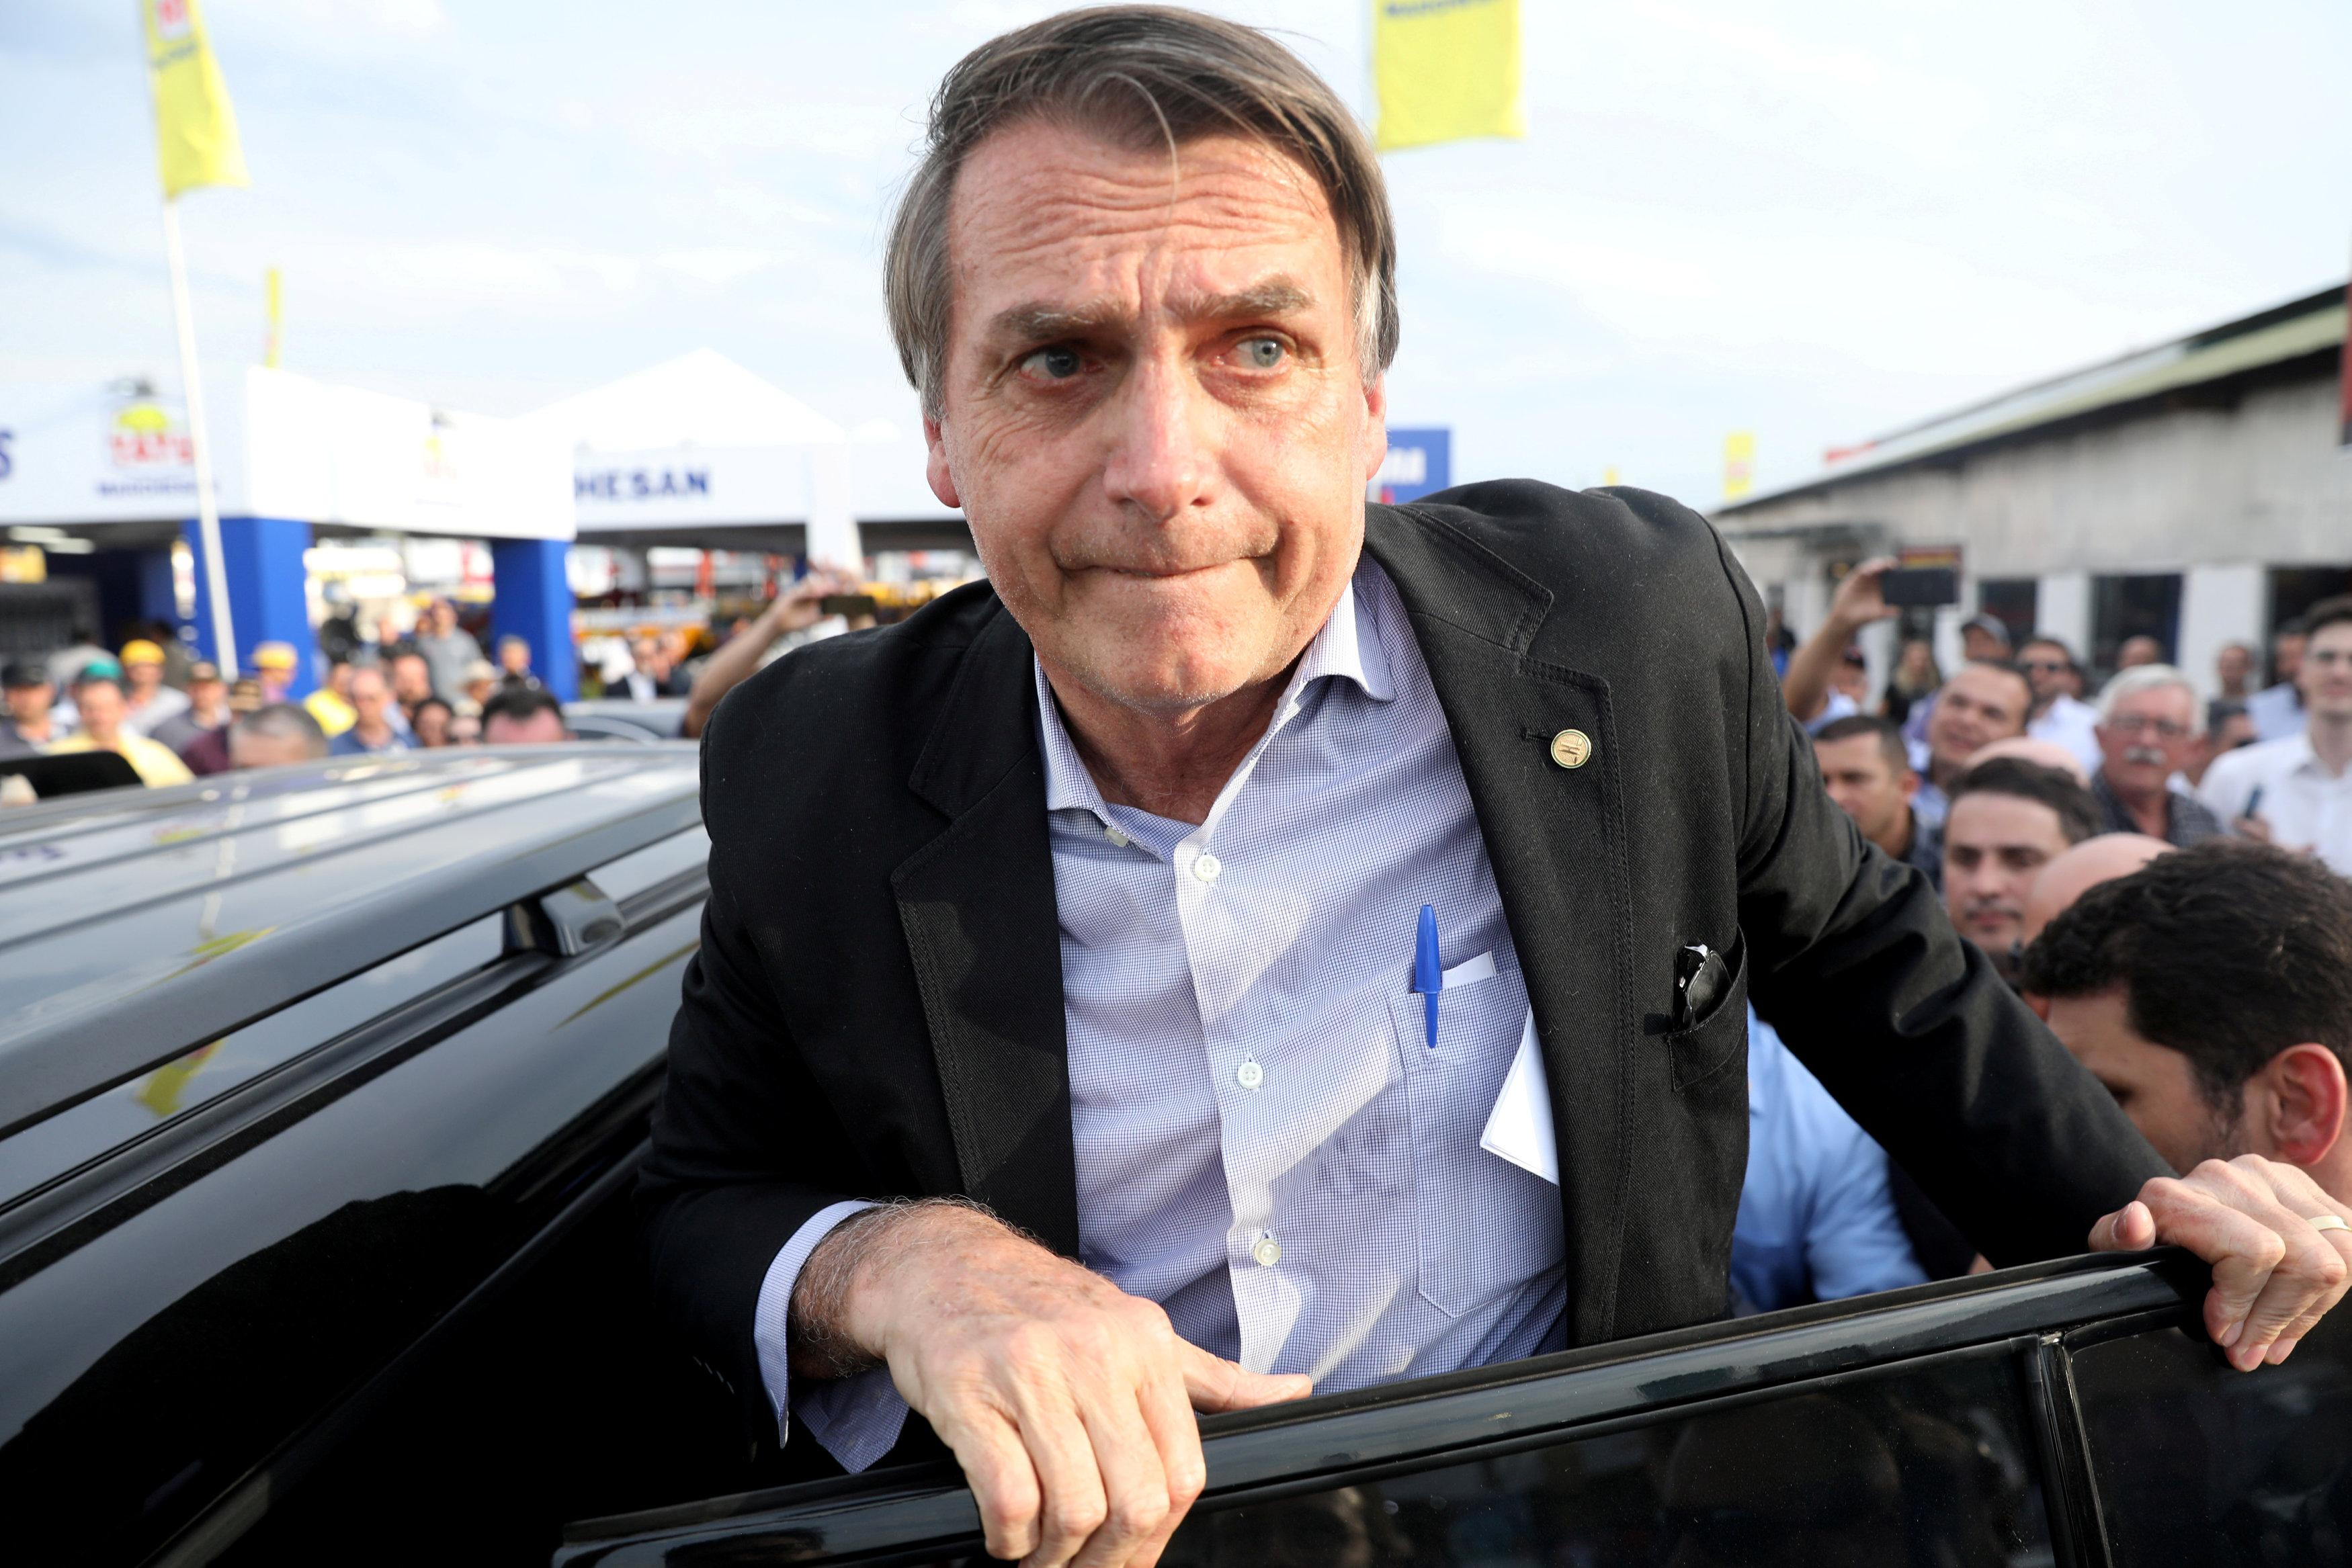 Presidential candidate Jair Bolsonaro leaves an agribusiness fair in Esteio, Rio Grande do Sul state, Brazil August 29, 2018. Diego Vara/File photo